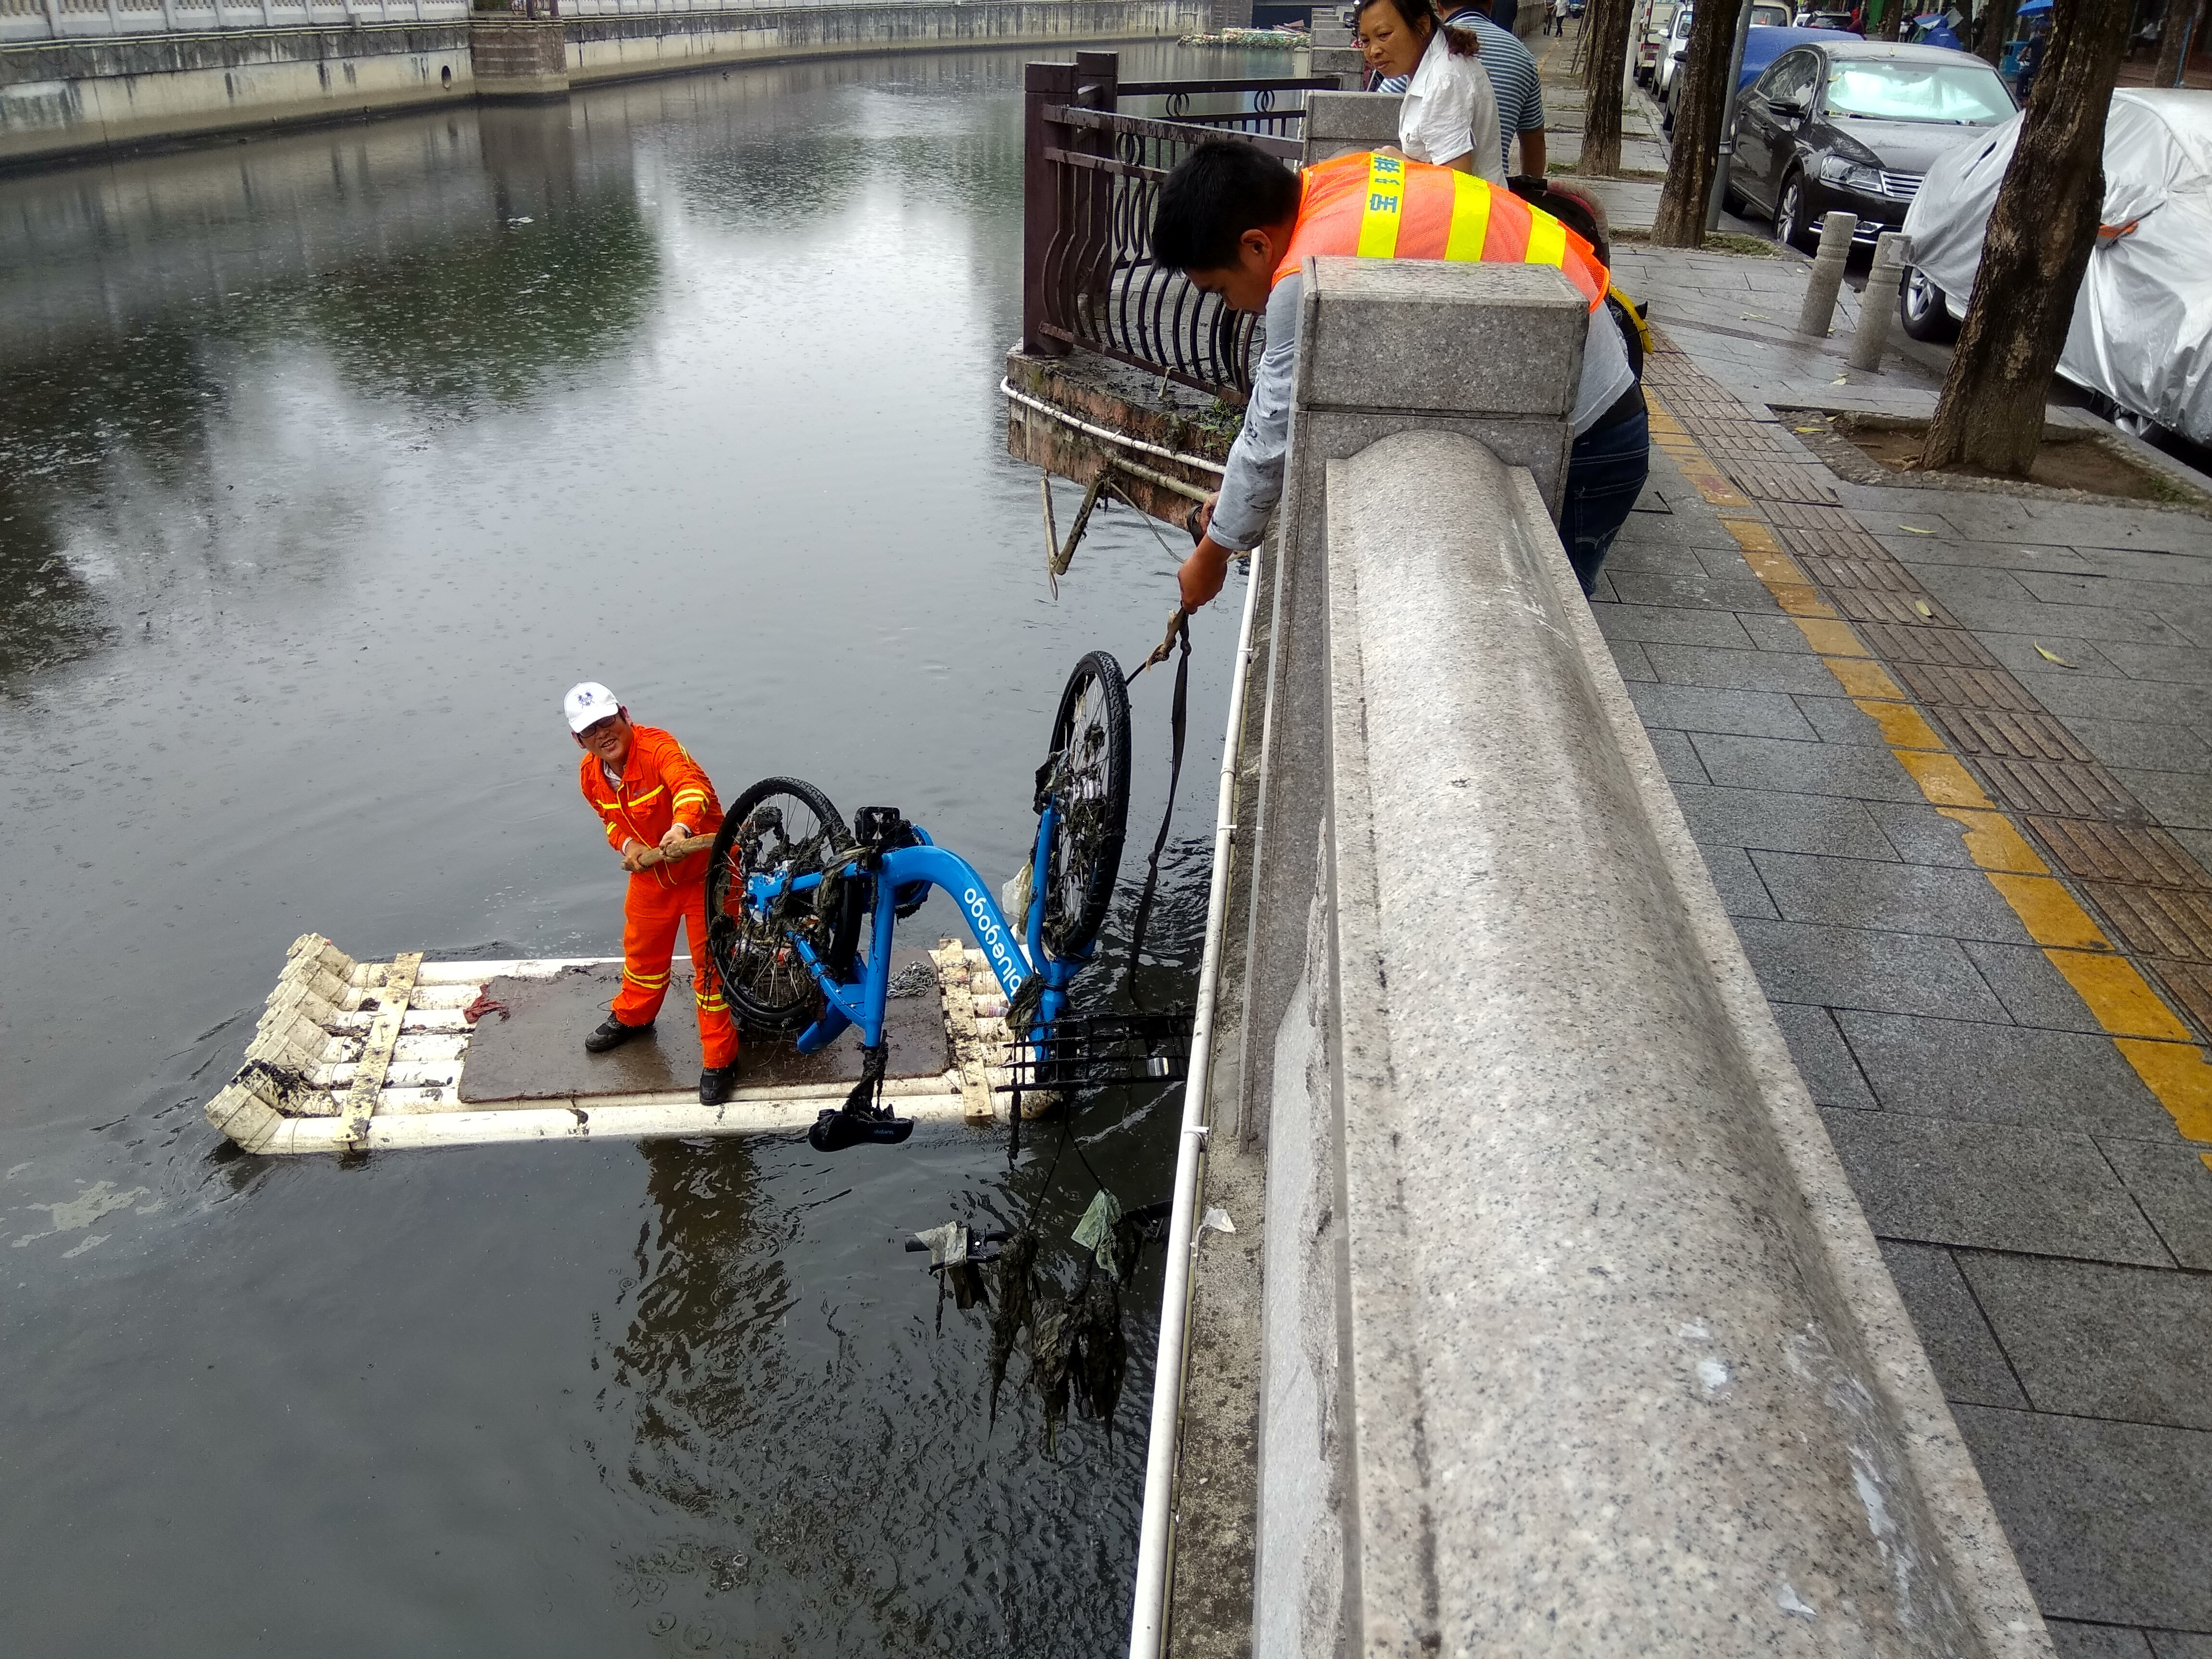 Workers salvage a fallen sharing bicycle from a river in Shenzhen, Guangdong province, China, April 24, 2017. Picture taken April 24, 2017. REUTERS/Stringer ATTENTION EDITORS - THIS IMAGE WAS PROVIDED BY A THIRD PARTY. EDITORIAL USE ONLY. CHINA OUT. NO COMMERCIAL OR EDITORIAL SALES IN CHINA. - RTS13SD0